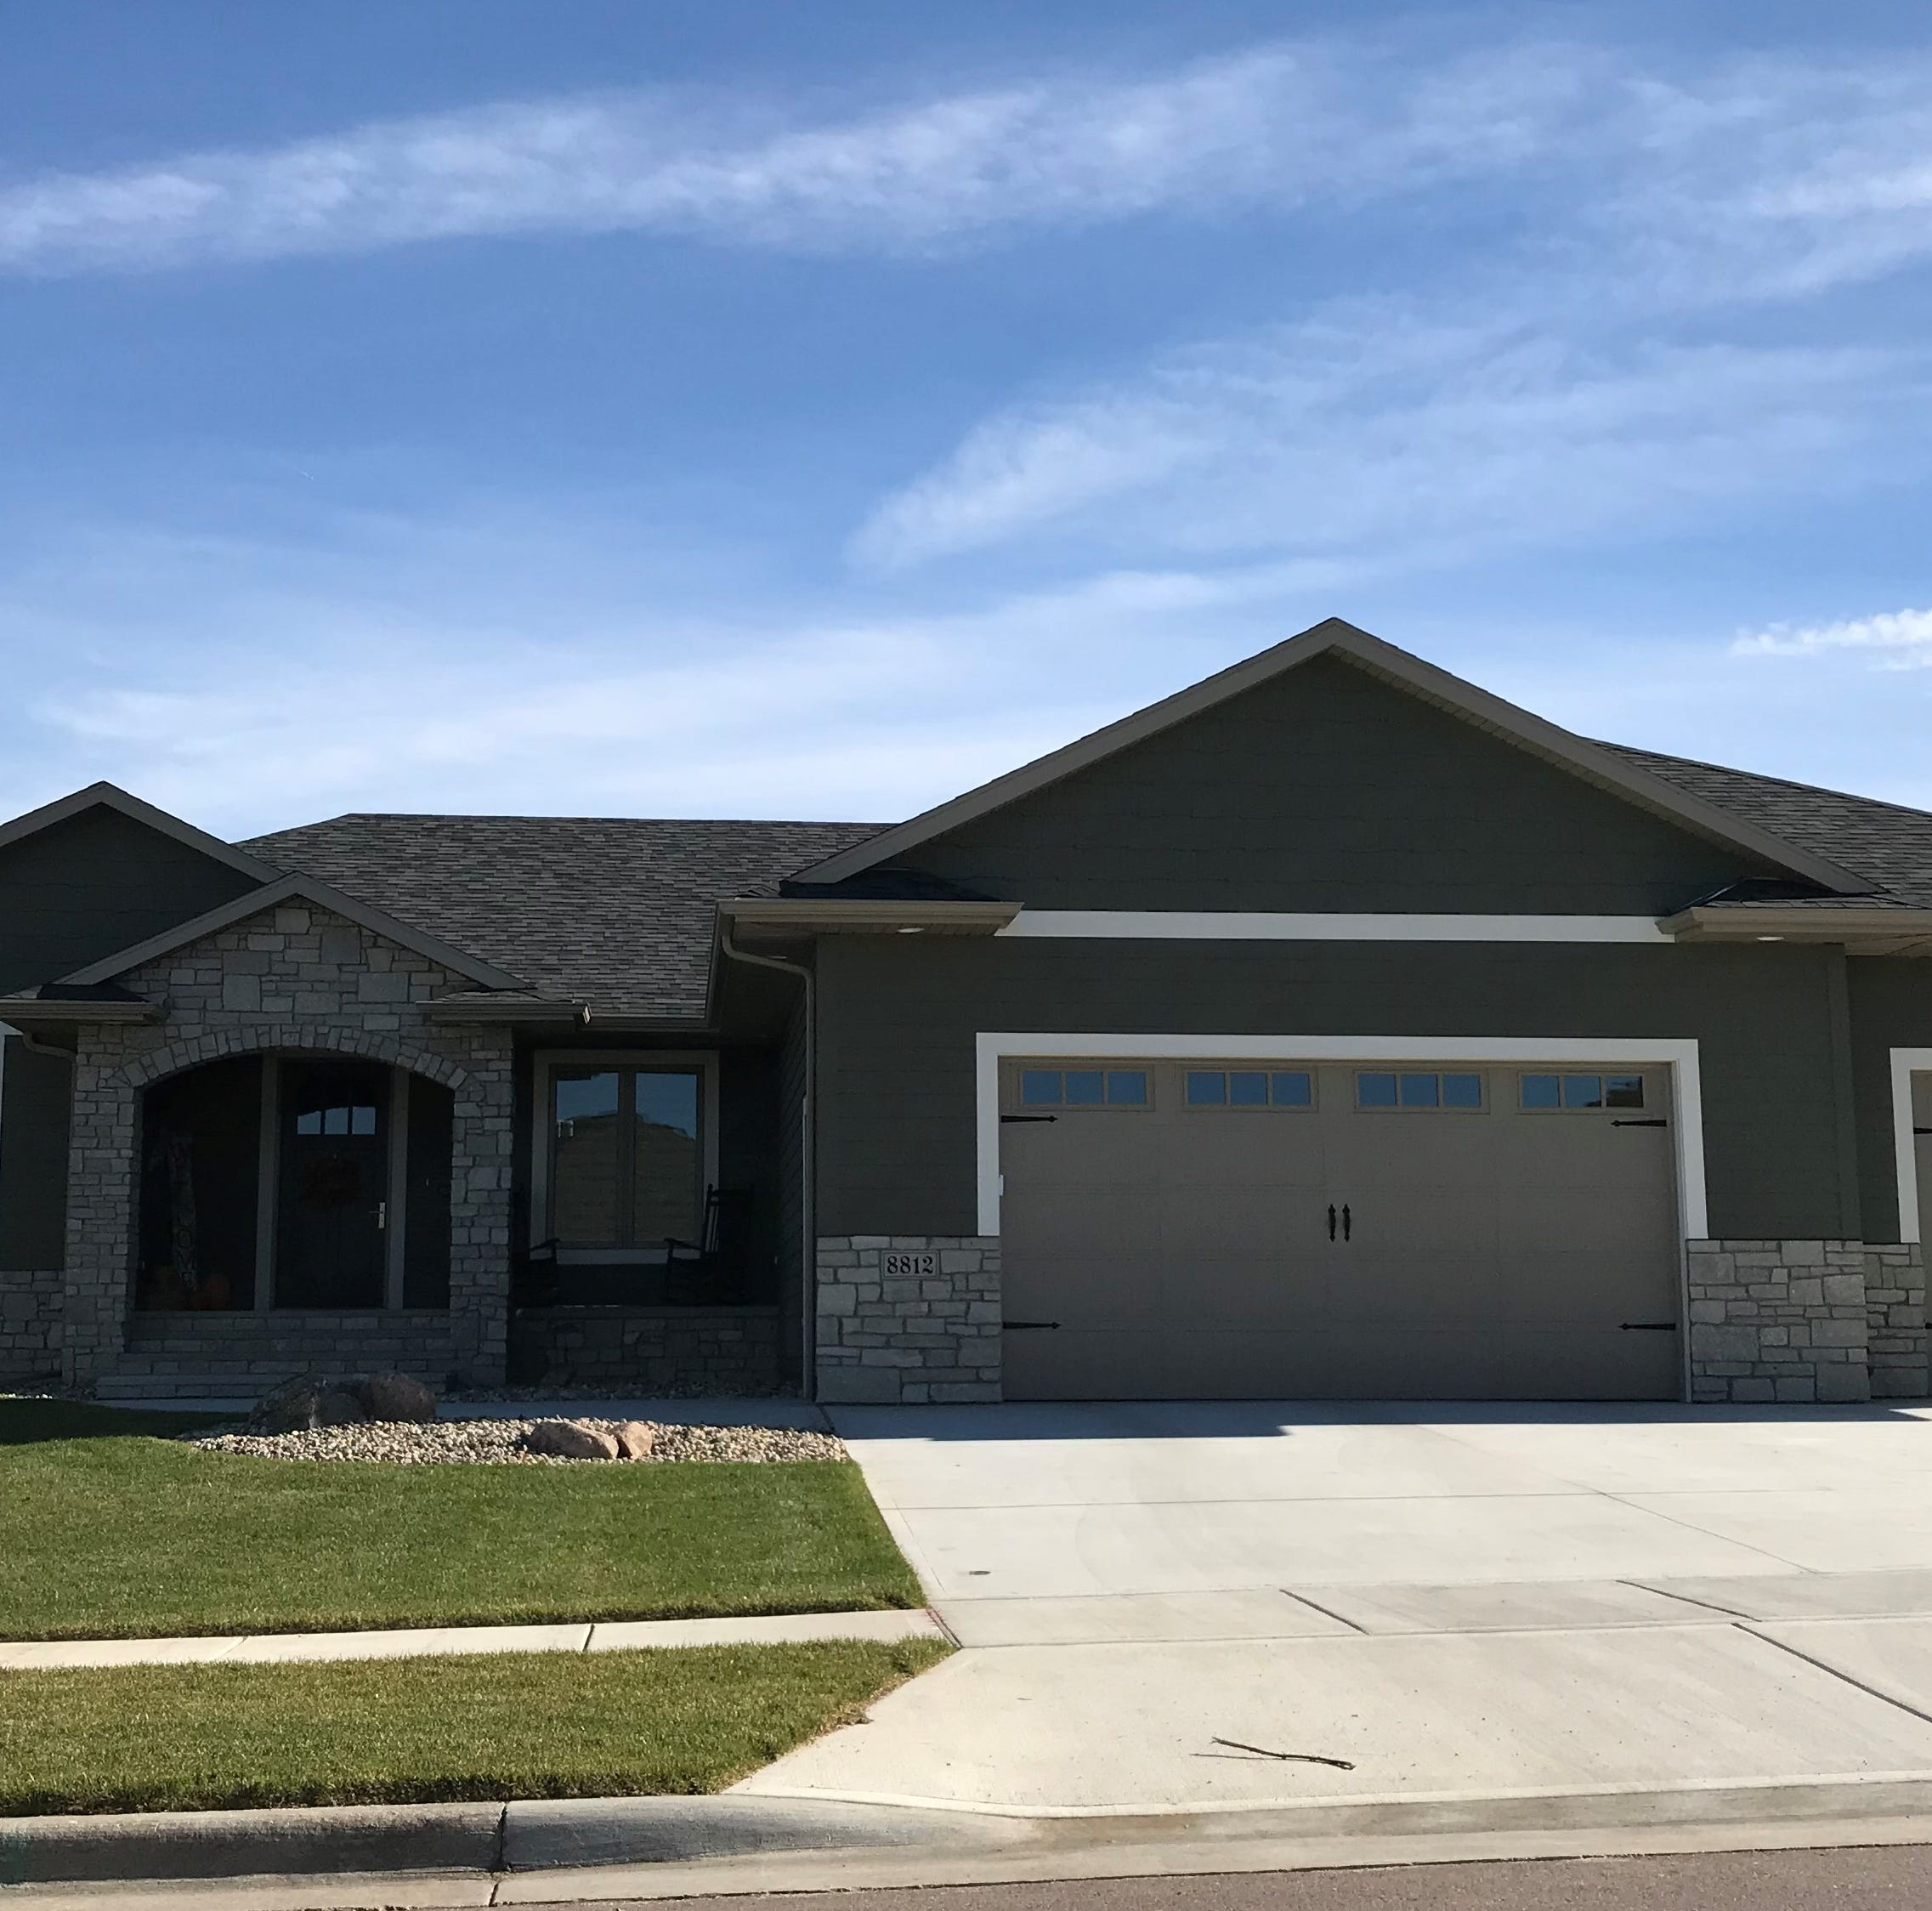 Lakeside home in west Sioux Falls sells for $670,000, tops home sales report